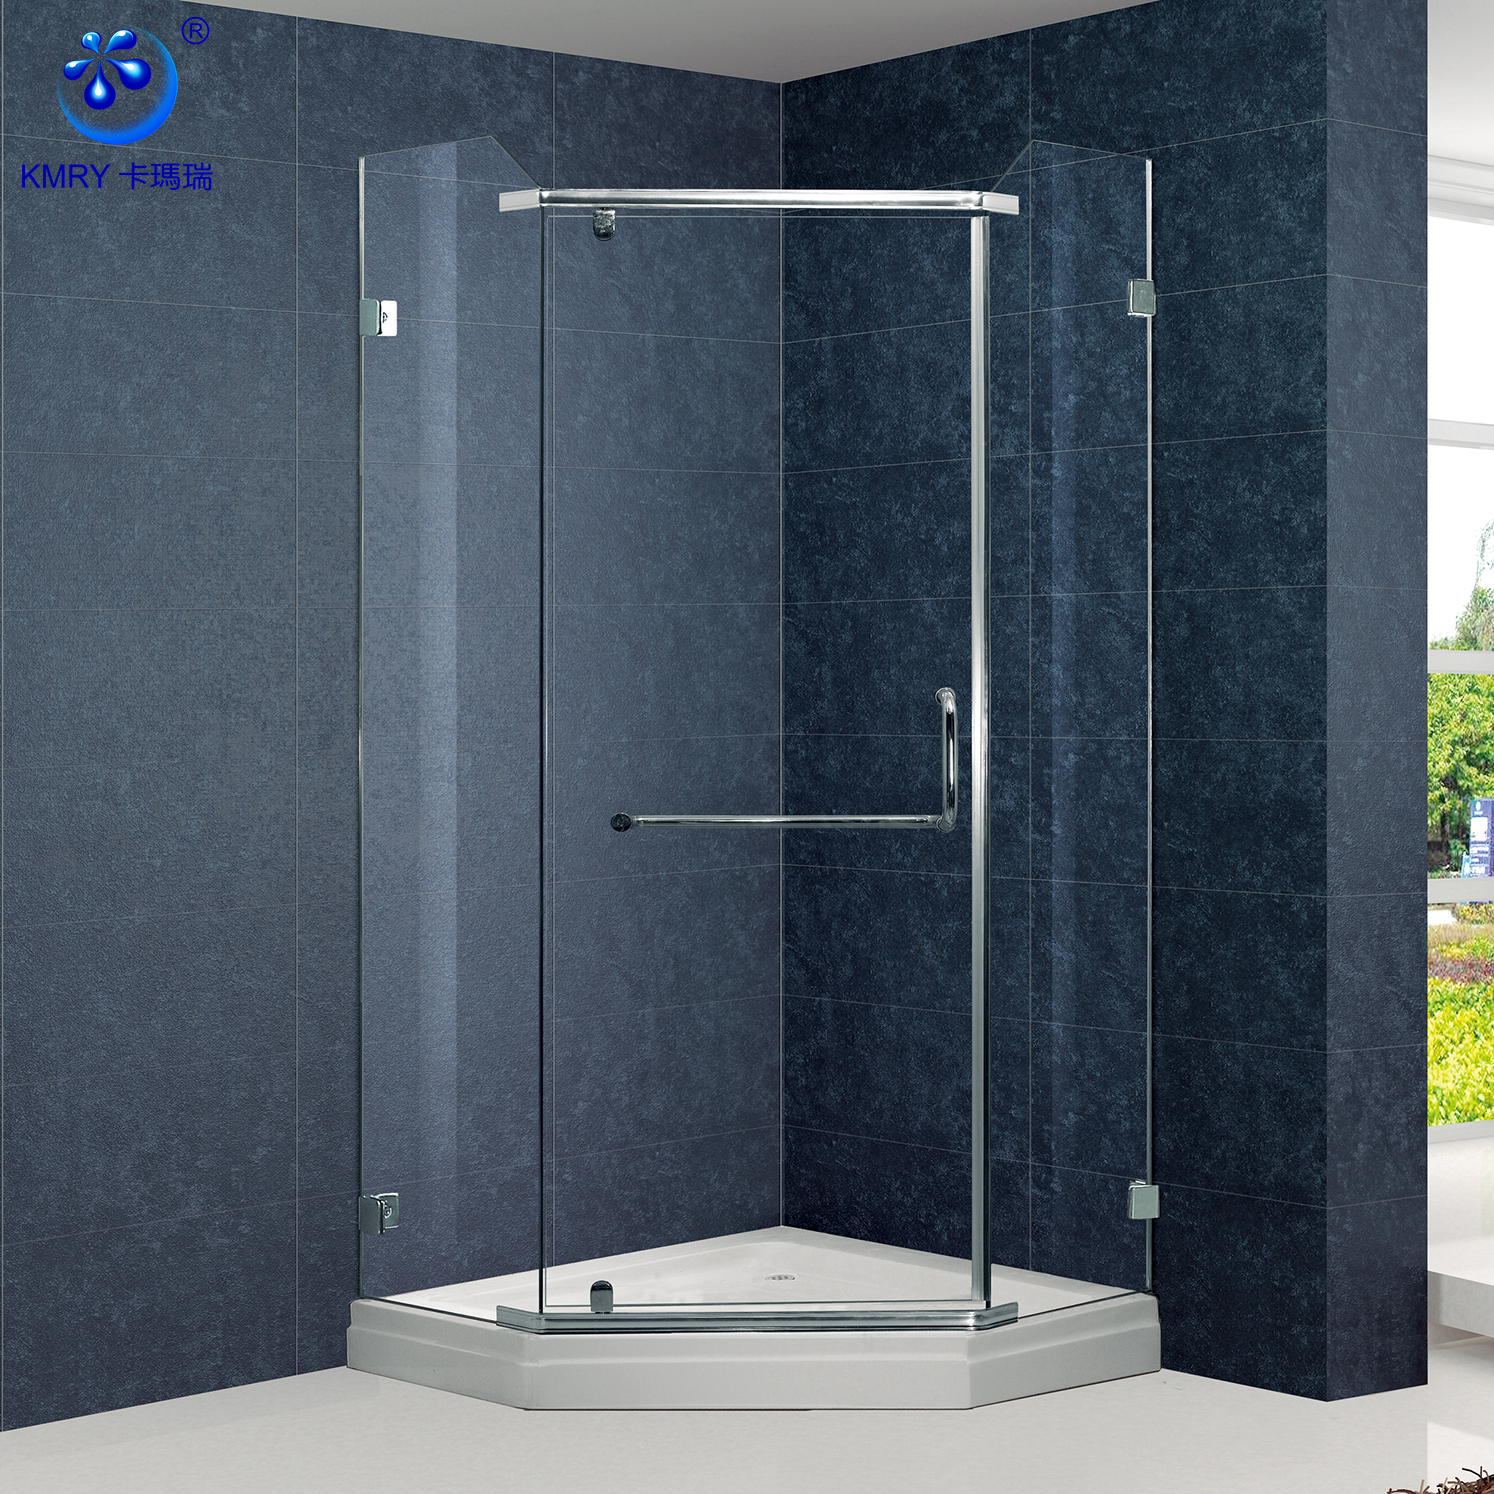 Customize Neo Angle Shape Frameless Stainless Steel Hardwares Pivot Shower Door Kk6527